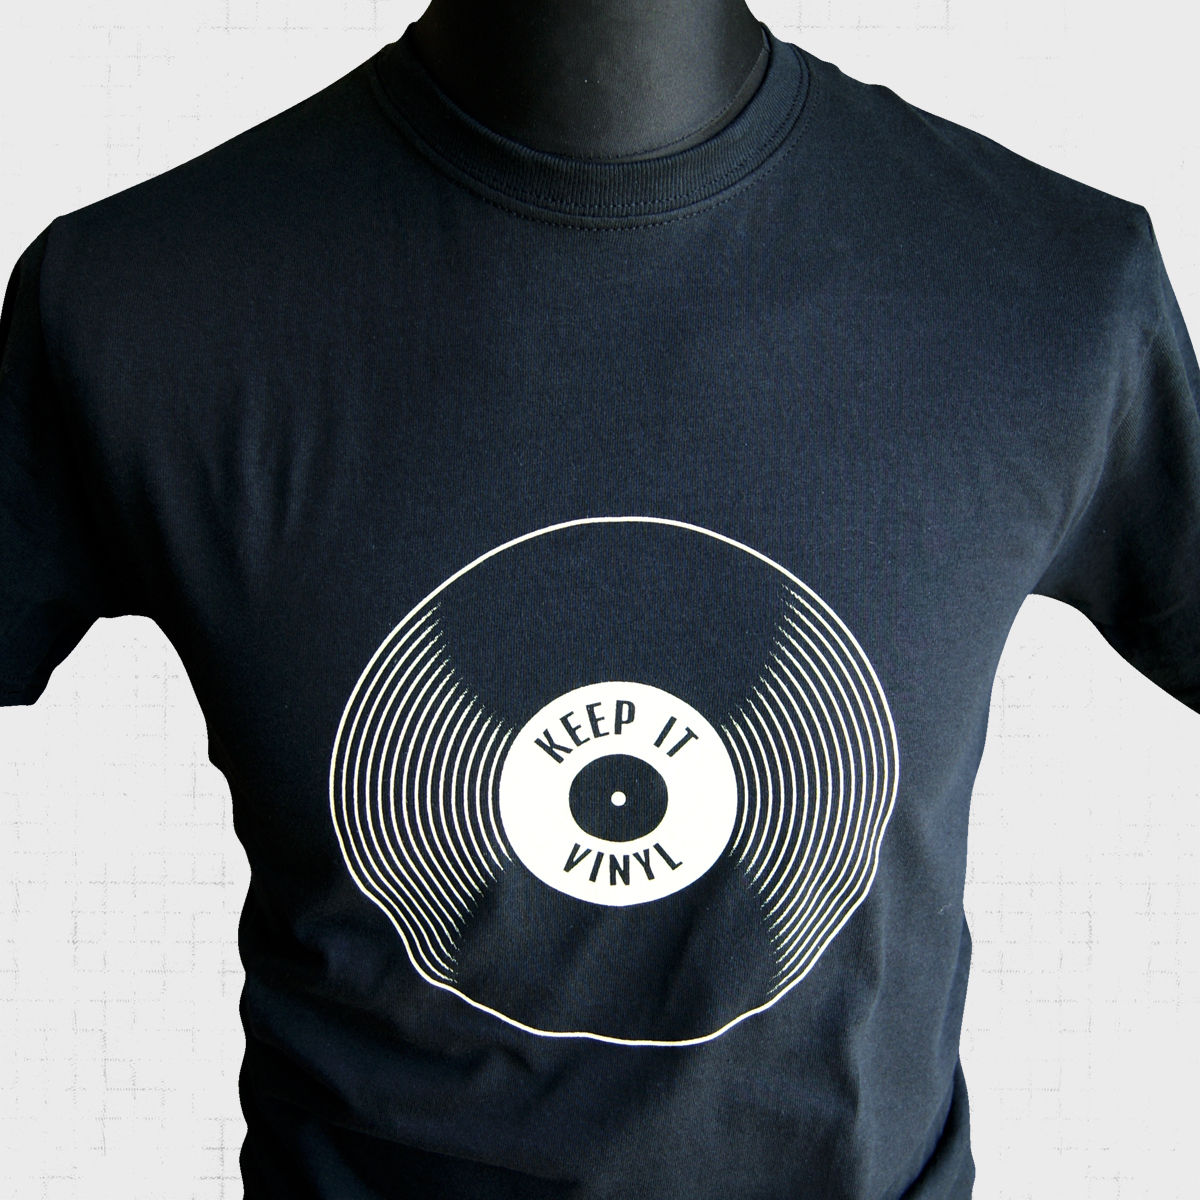 Keep it Vinyl Retro T Shirt Vintage Music 33 45 78 RPM Records Albums Classic New Shirts Funny Tops Tee Unisex